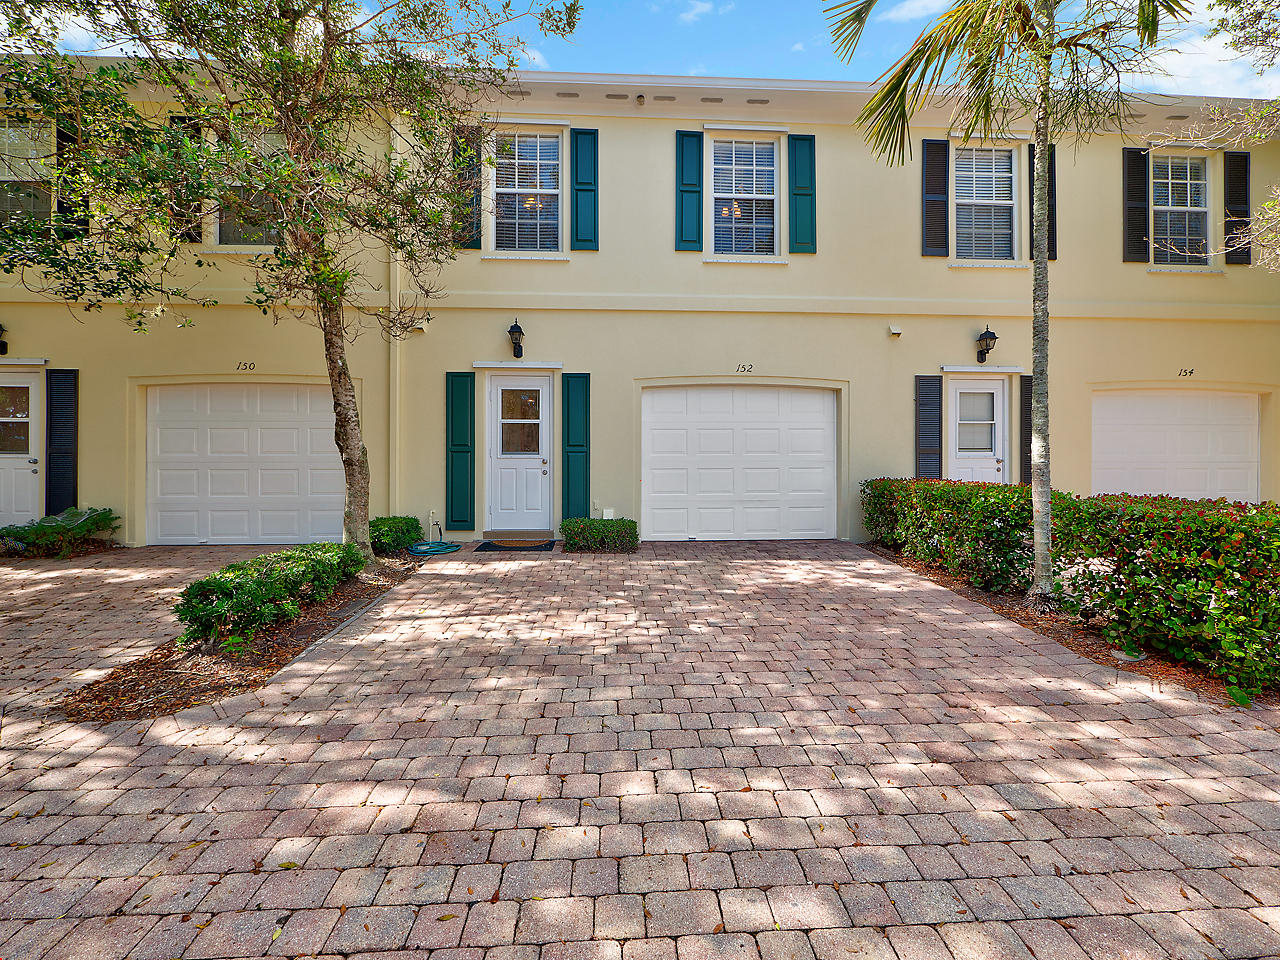 152 Ashley Court, Jupiter, Florida 33458, 3 Bedrooms Bedrooms, ,2.1 BathroomsBathrooms,A,Townhouse,Ashley,RX-10490976